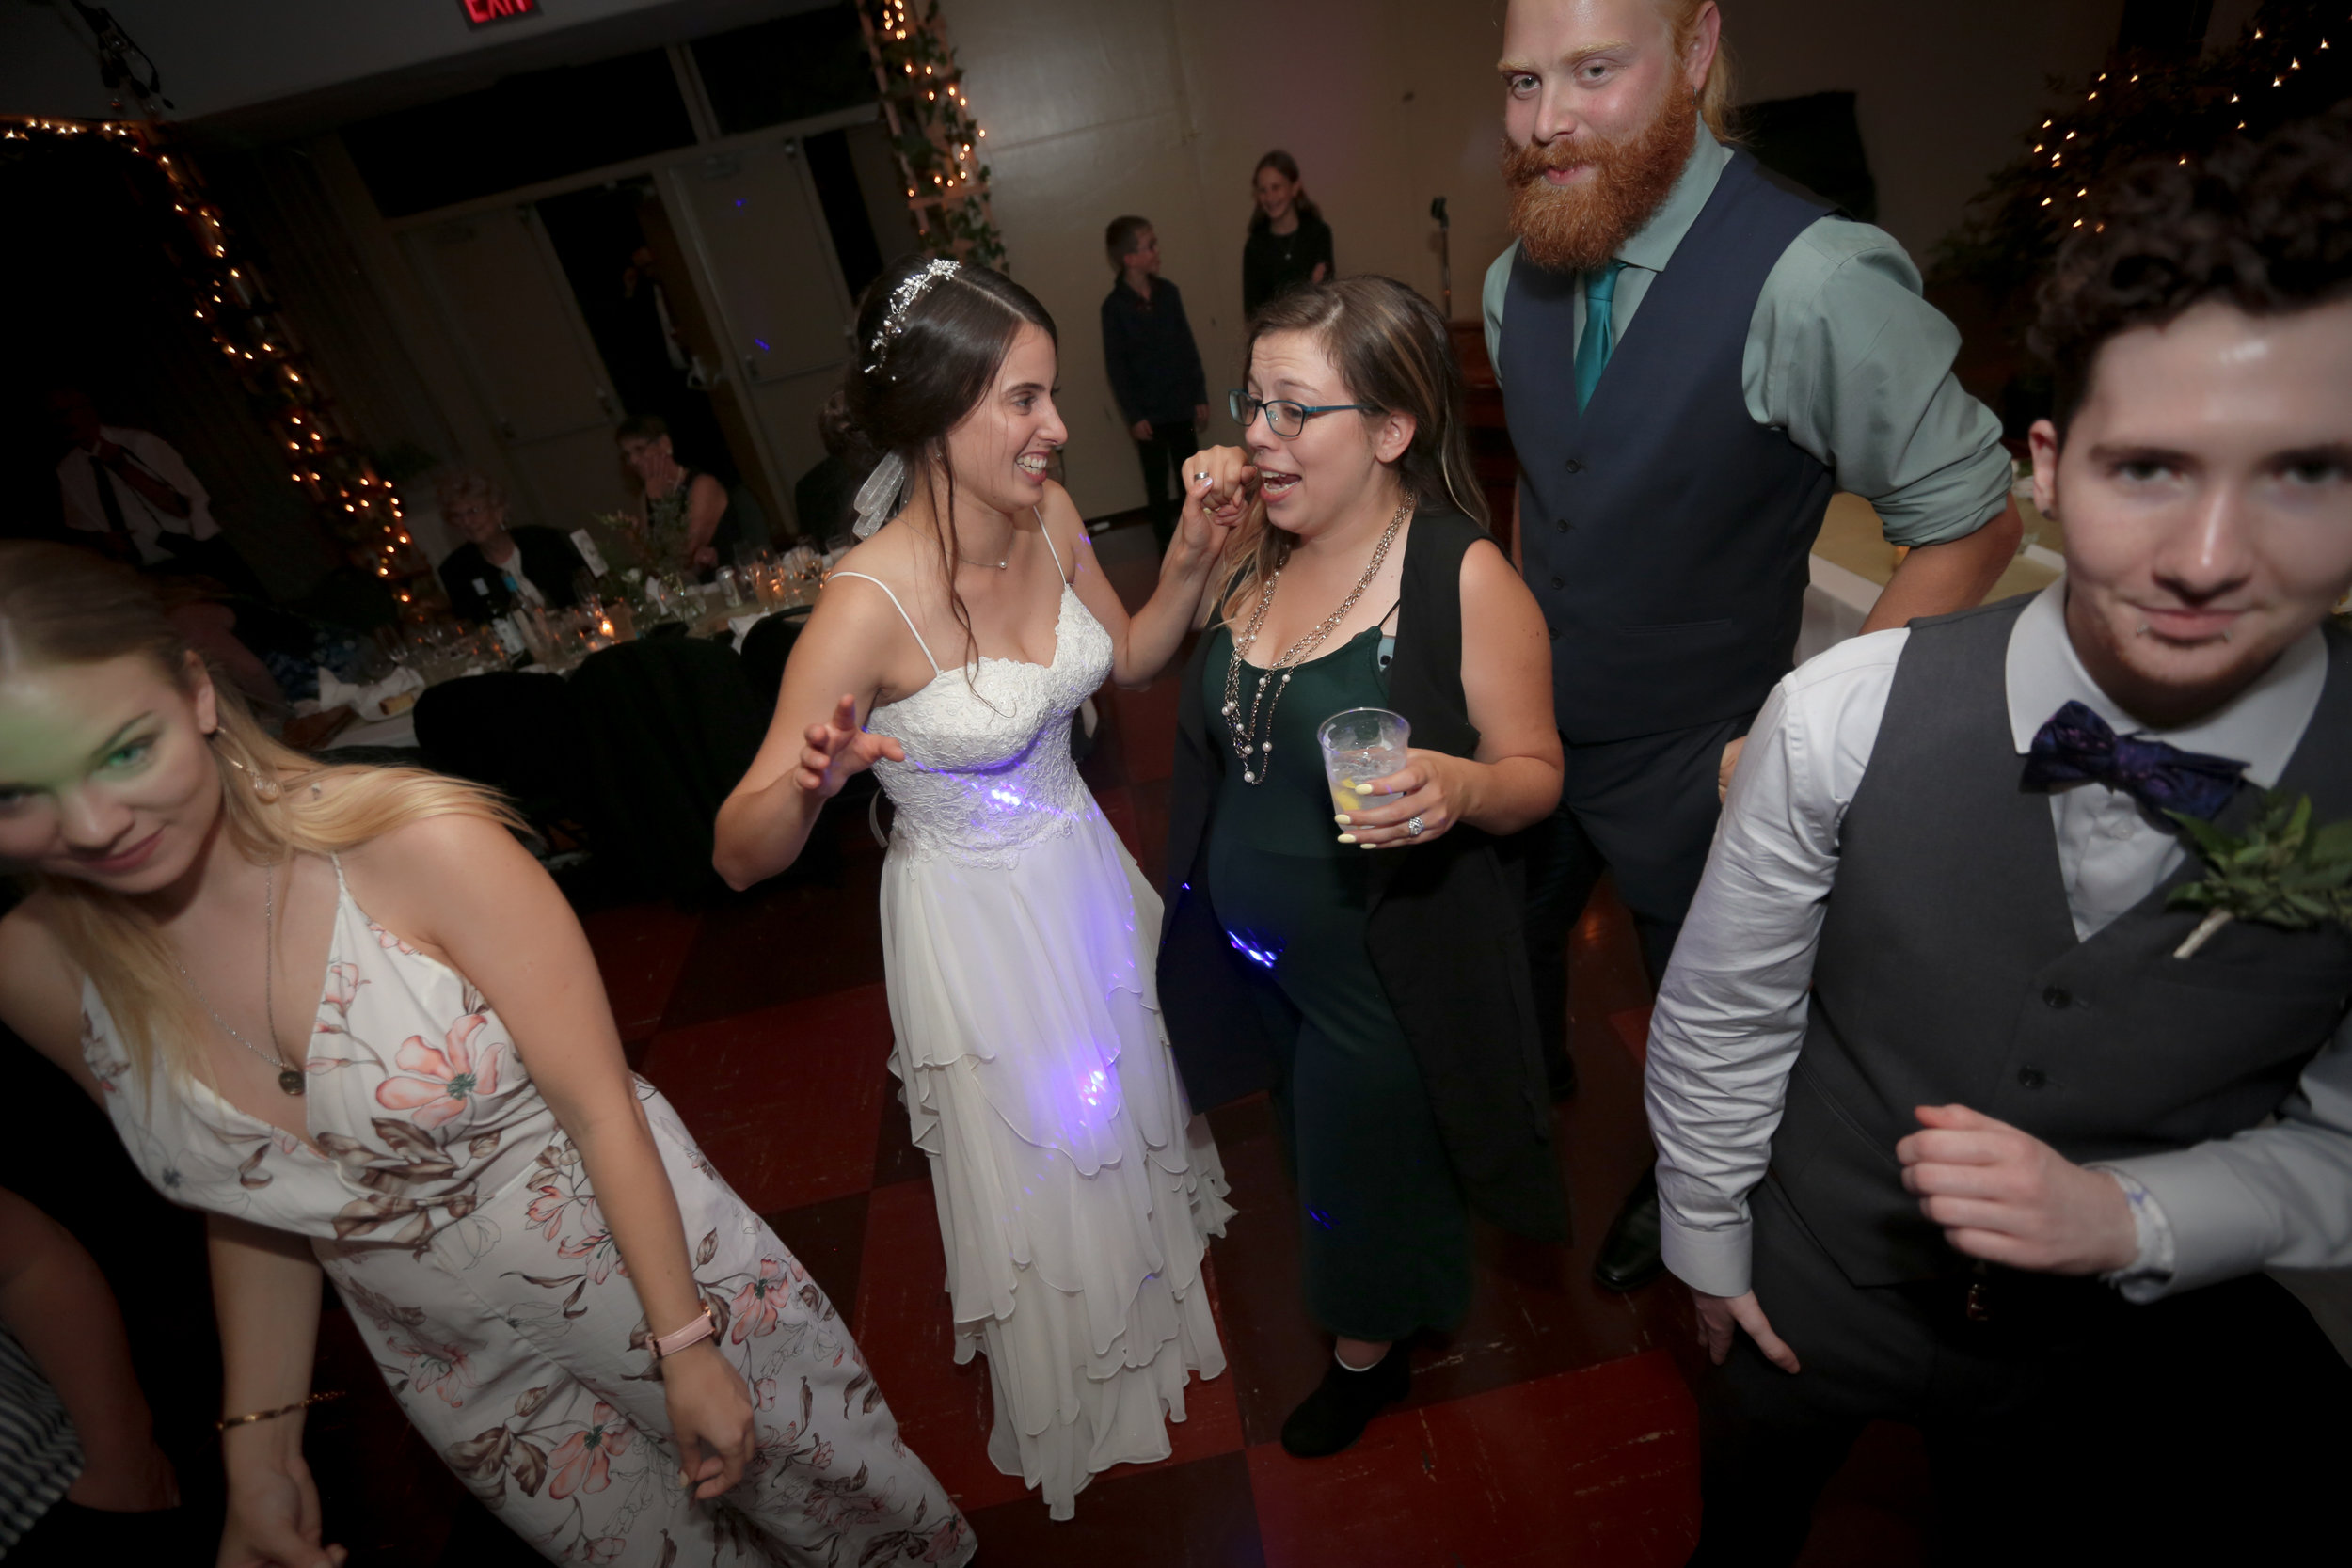 Emily&AaronWedding (548 of 572).jpg